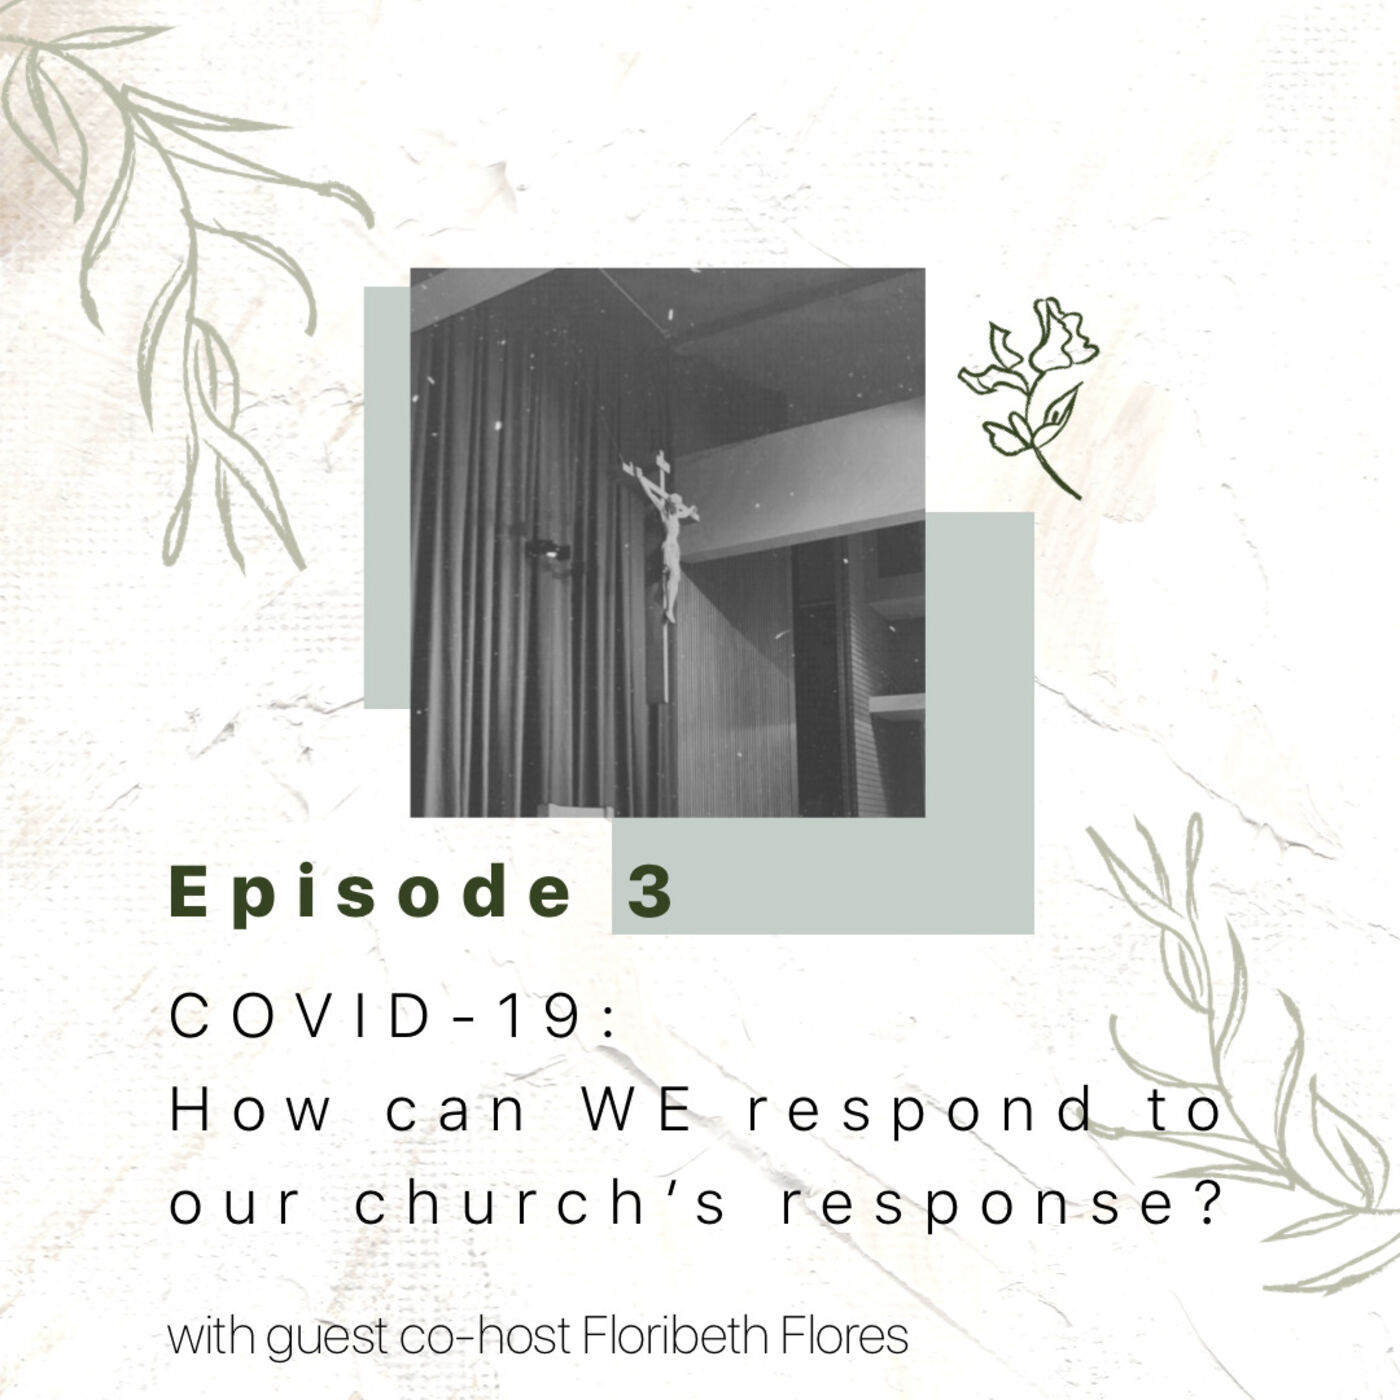 COVID-19: How Can We Respond to our Church's Response?